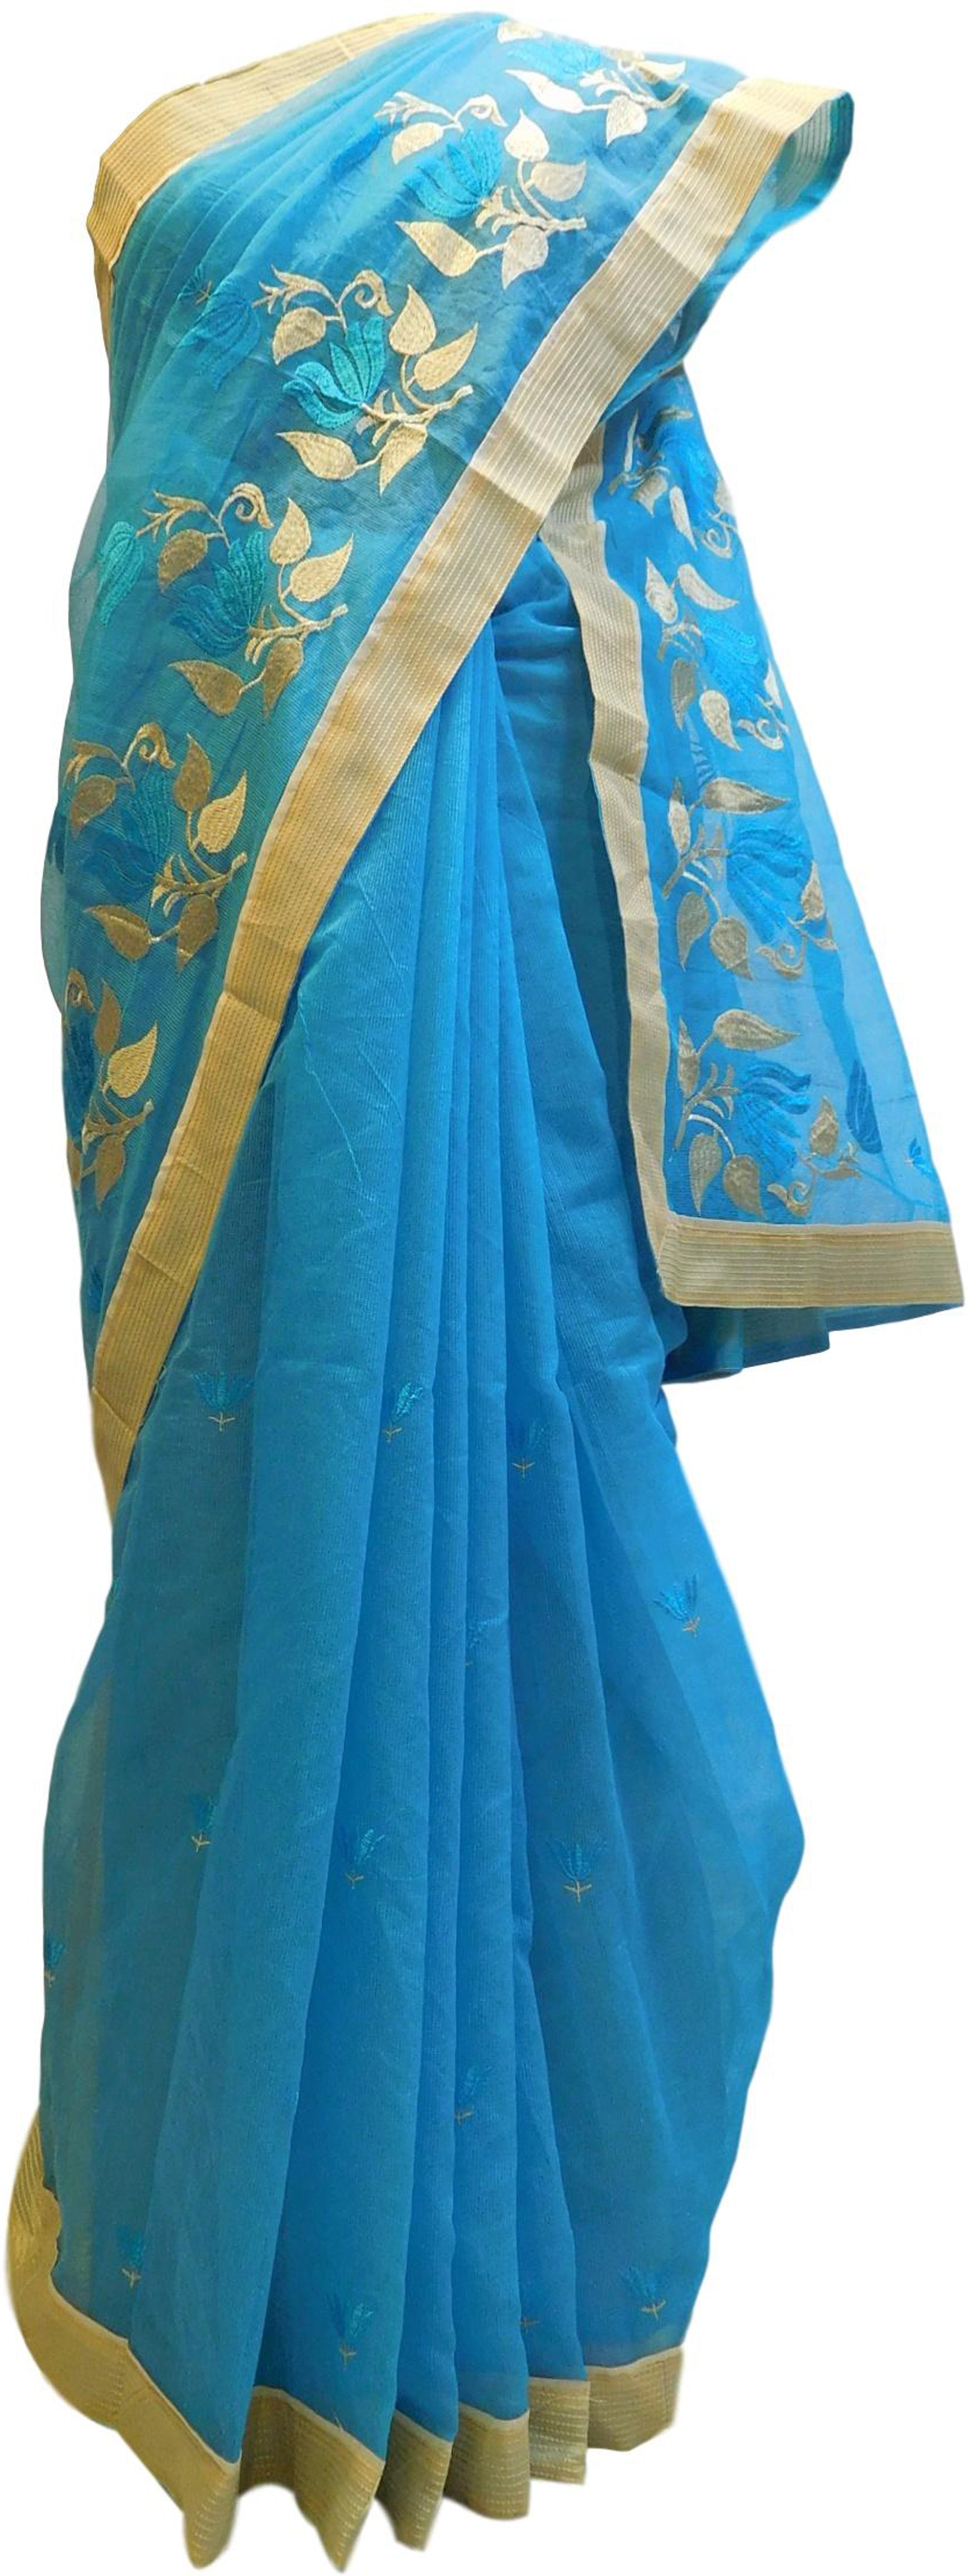 Blue Designer PartyWear Pure Supernet (Cotton) Thread Work Saree Sari With Beige Border